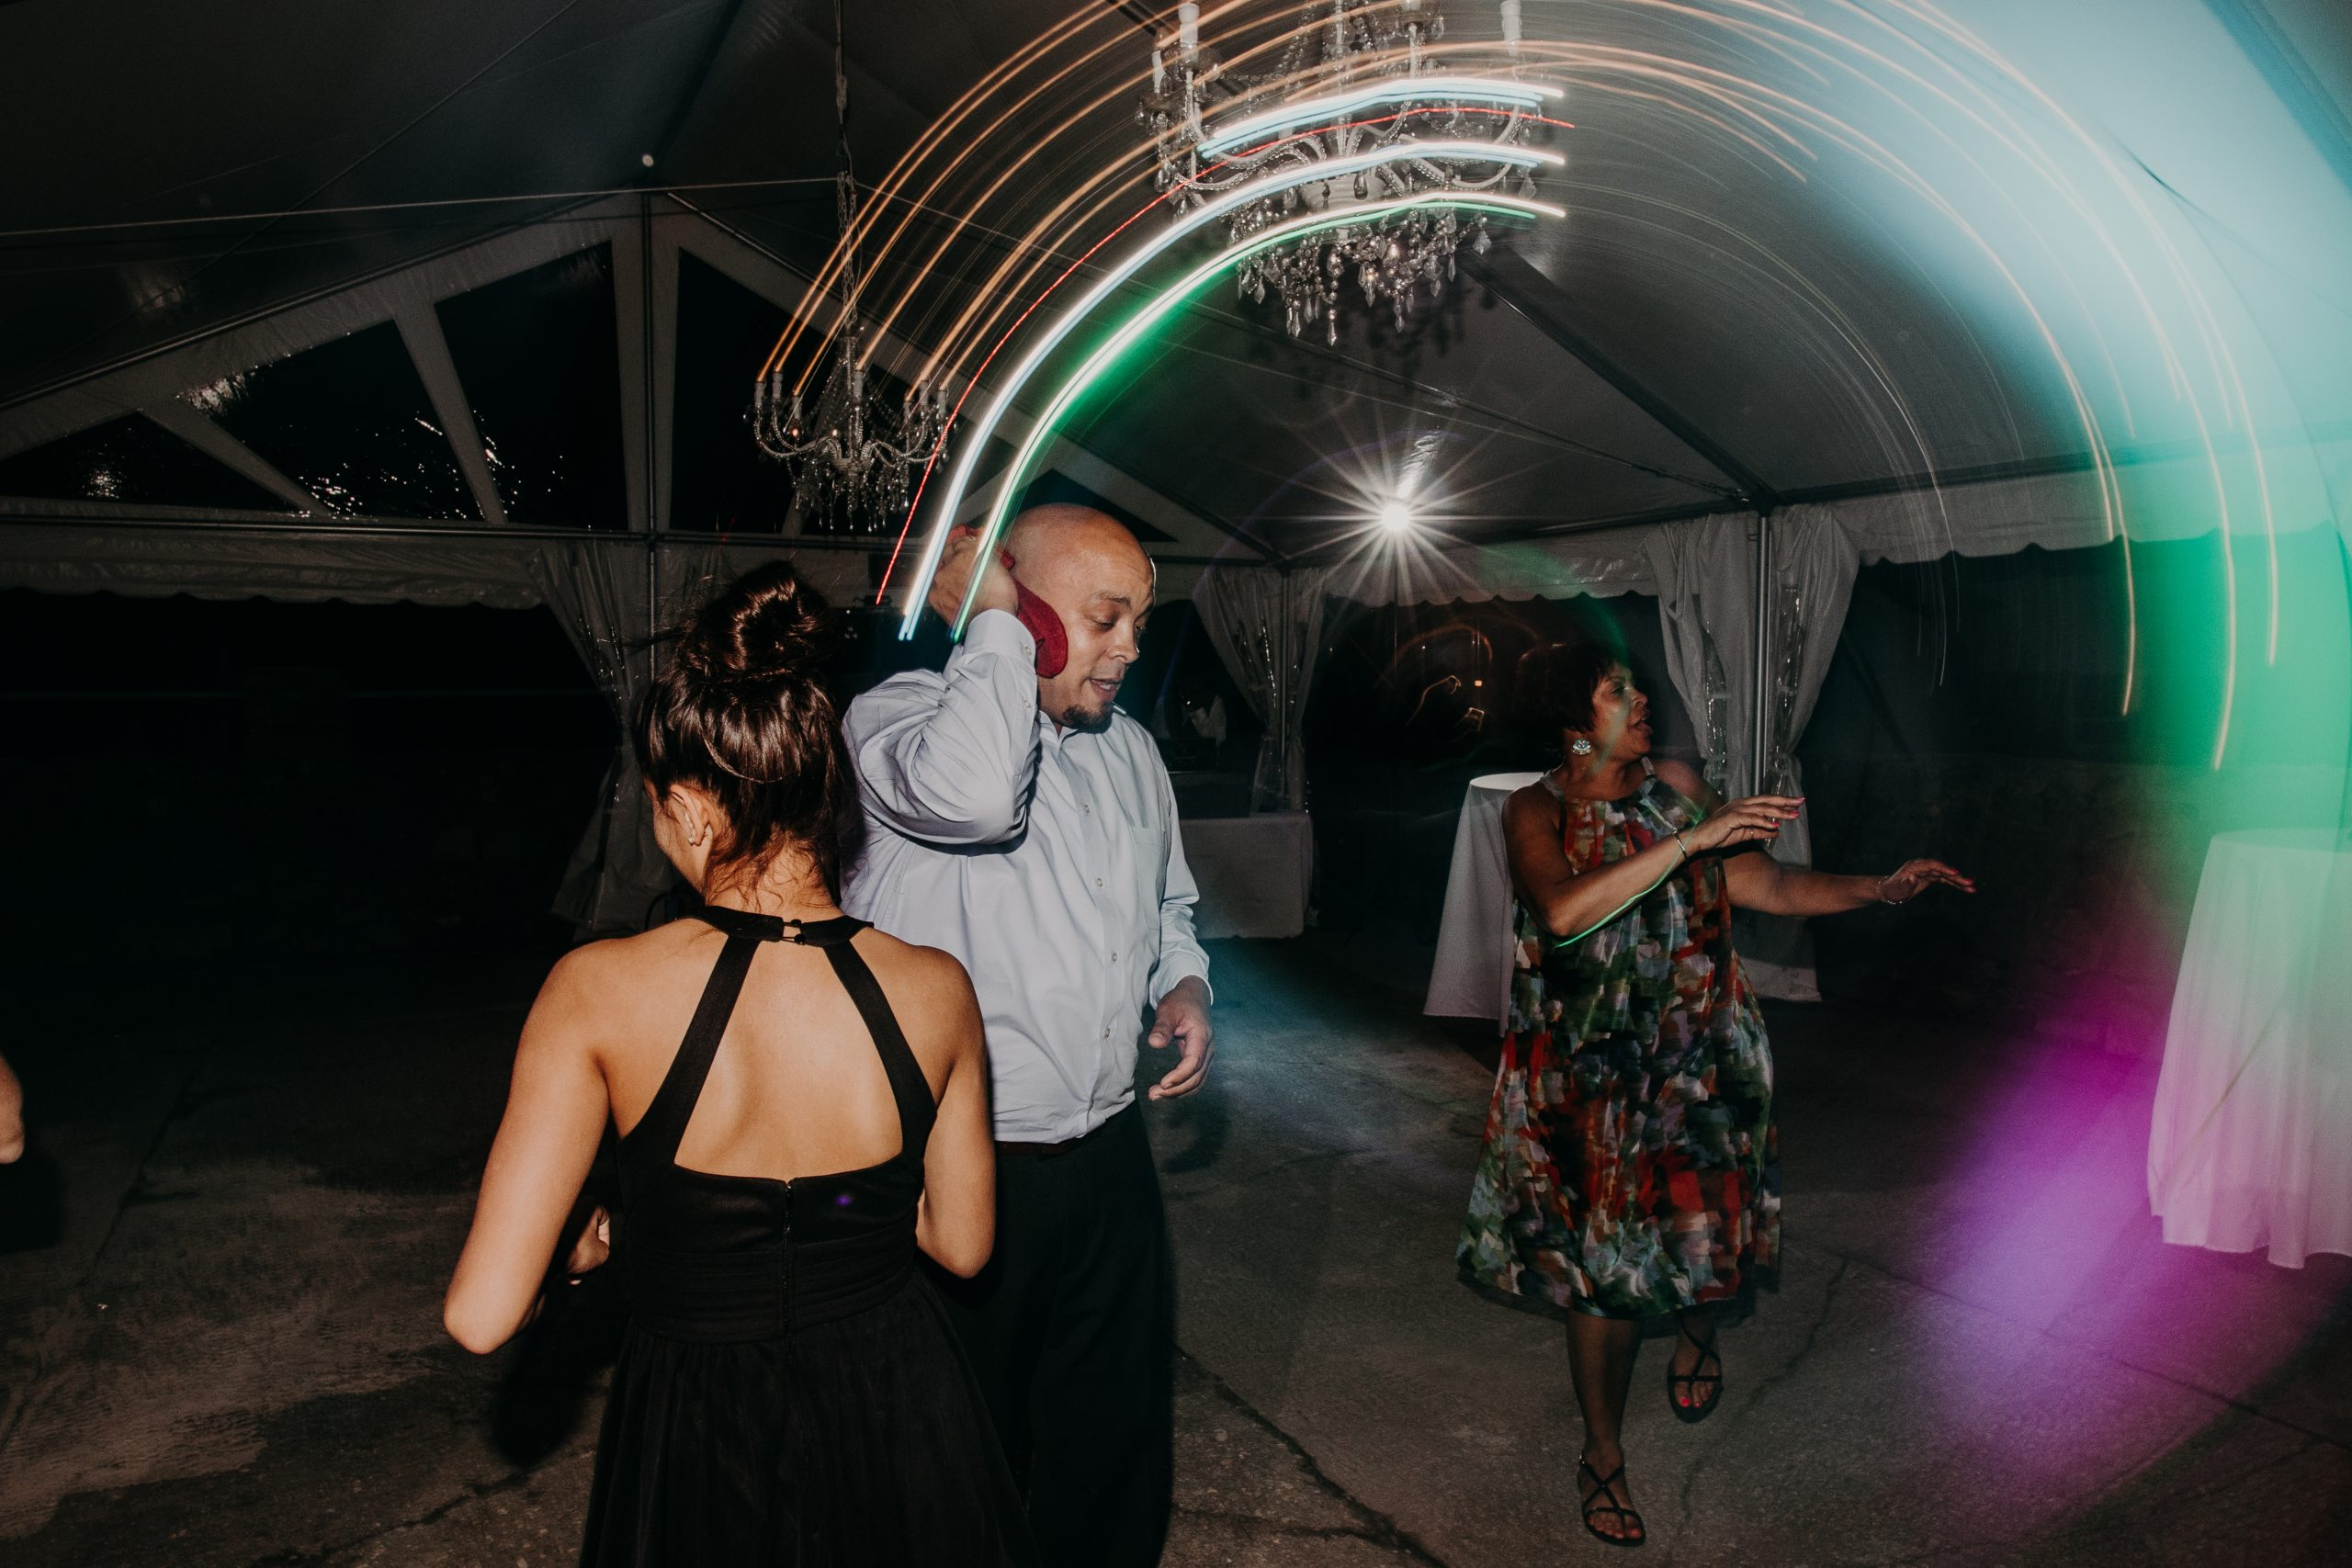 The party starts to wind down. Christine and Richard wed on the Chestnut Hill Villa grounds on May of 2019. This organic ethereal styled wedding was captured by Garnet Dahlia Photography and featured on Dream Weddings.